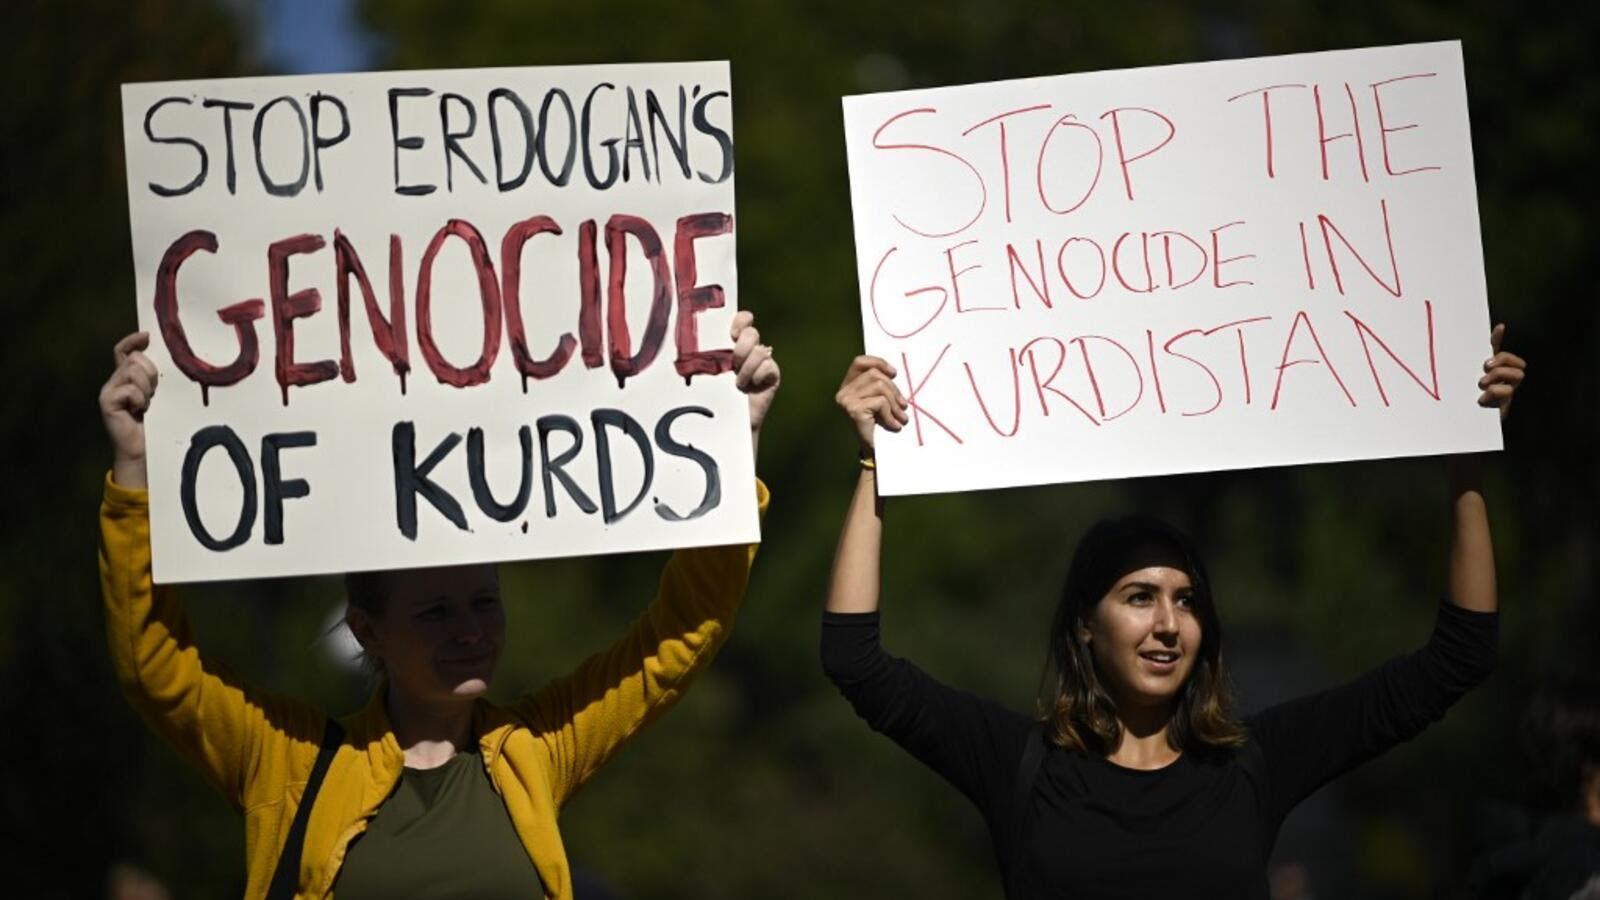 Protestors attend a demonstration against the Turkish military operation in northern Syria October 12, 2019 in New York City. (Johannes EISELE / AFP)